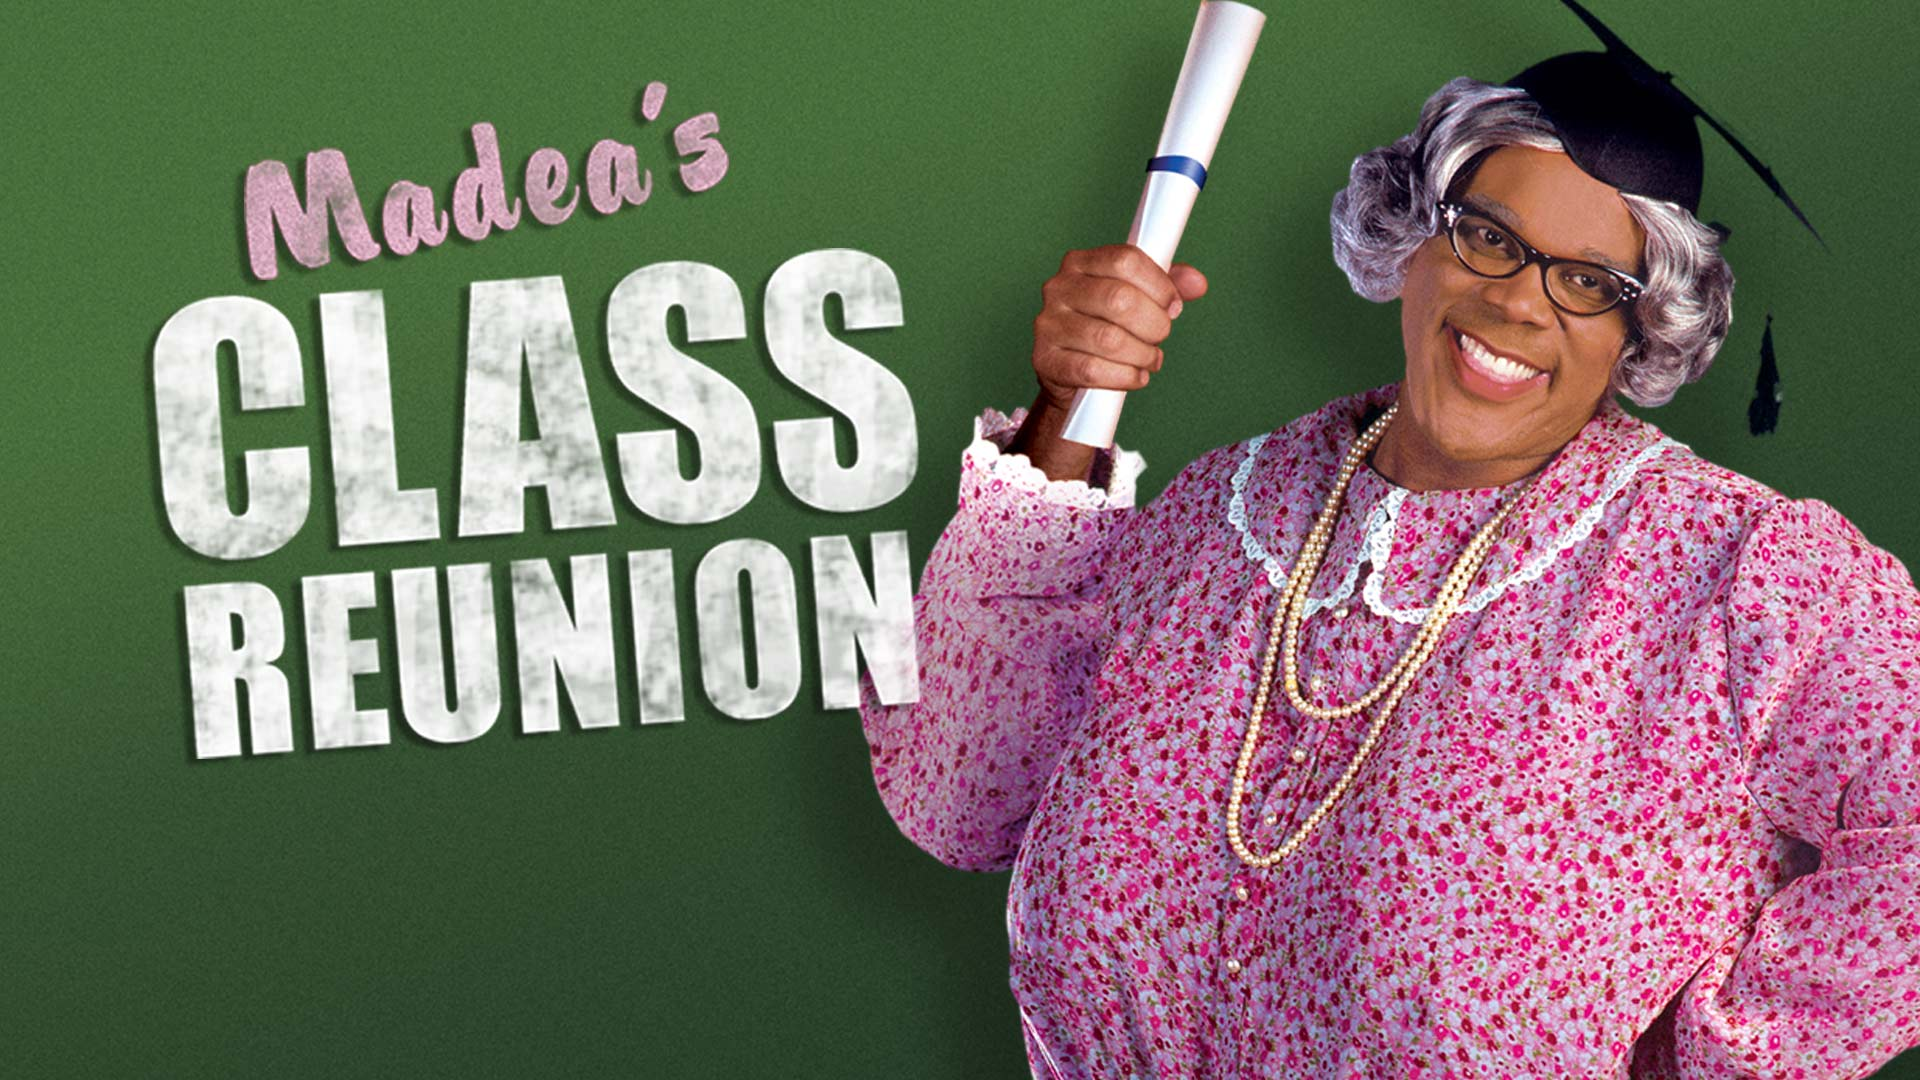 Madea's Class Reunion (Stage Play)